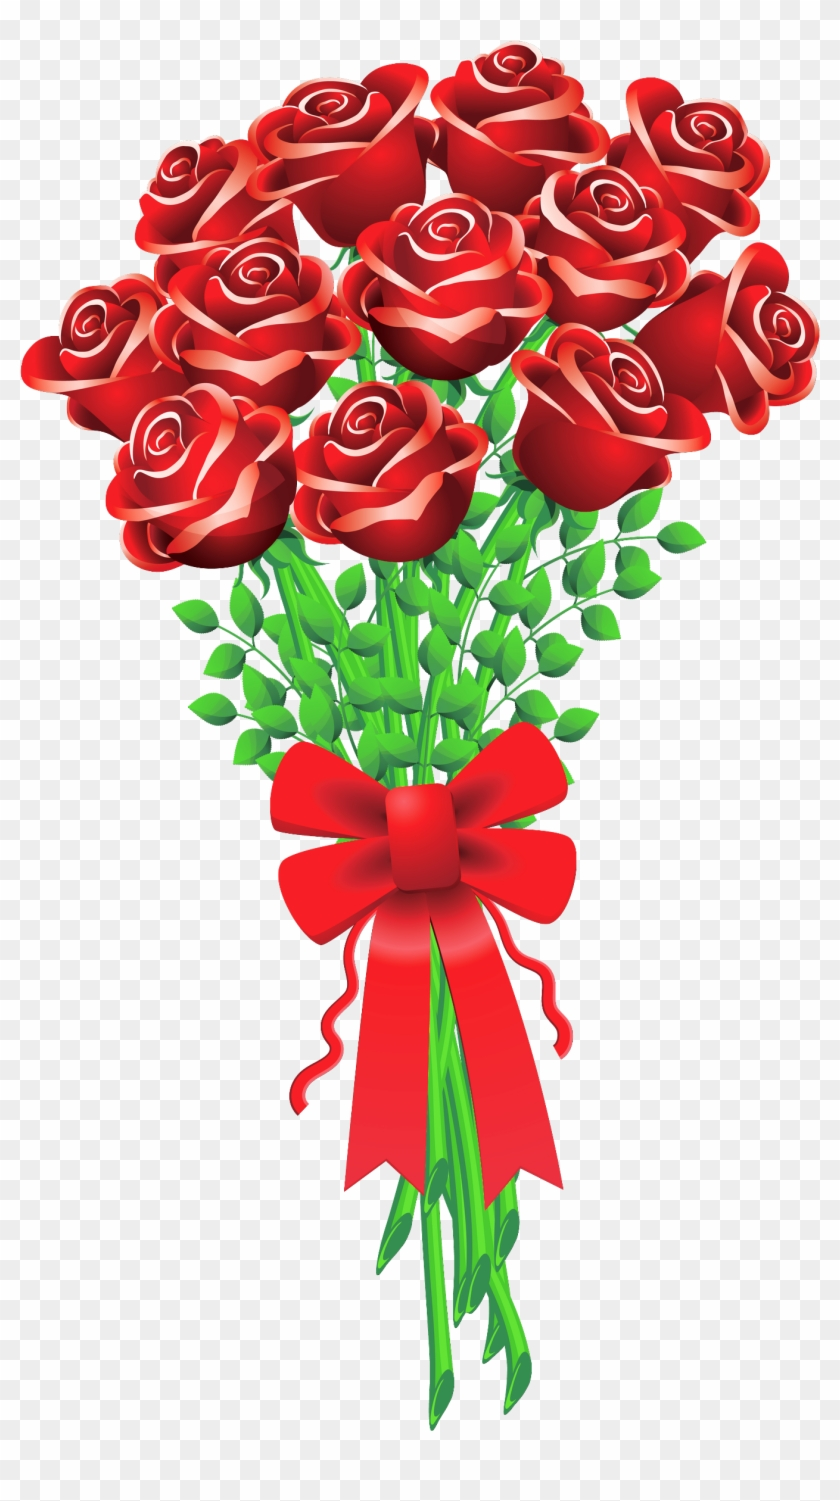 Red Rose Clipart Valentine Rose - Bouquet Of Roses Clipart #386107